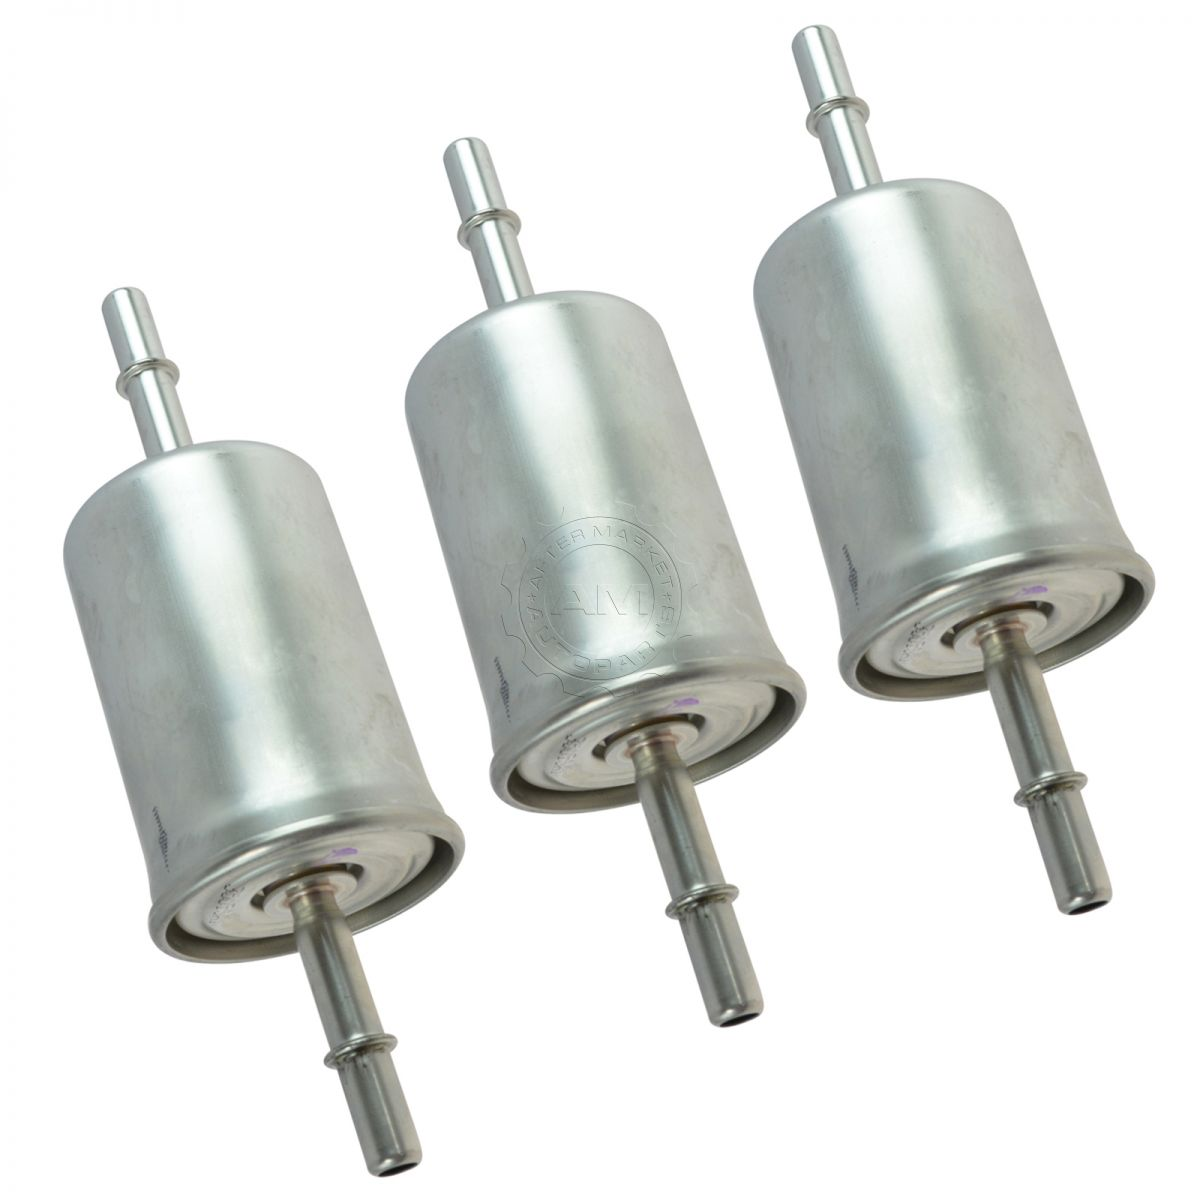 hight resolution of motorcraft fg1083 fuel filter in line set of 3 for ford lincoln mercury new